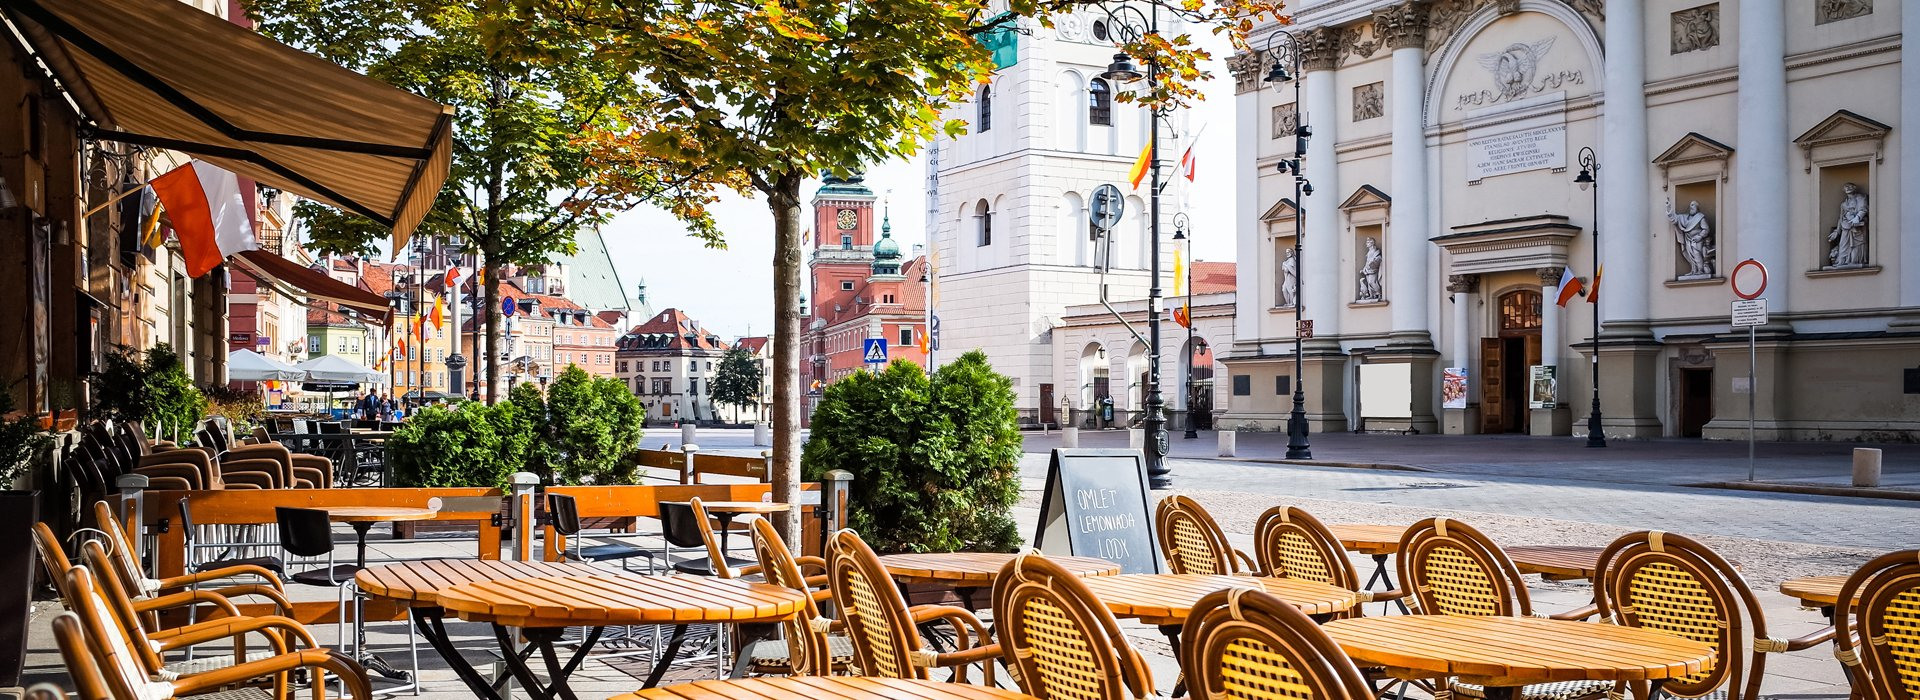 So nice and warm morning by old Town in Warsaw